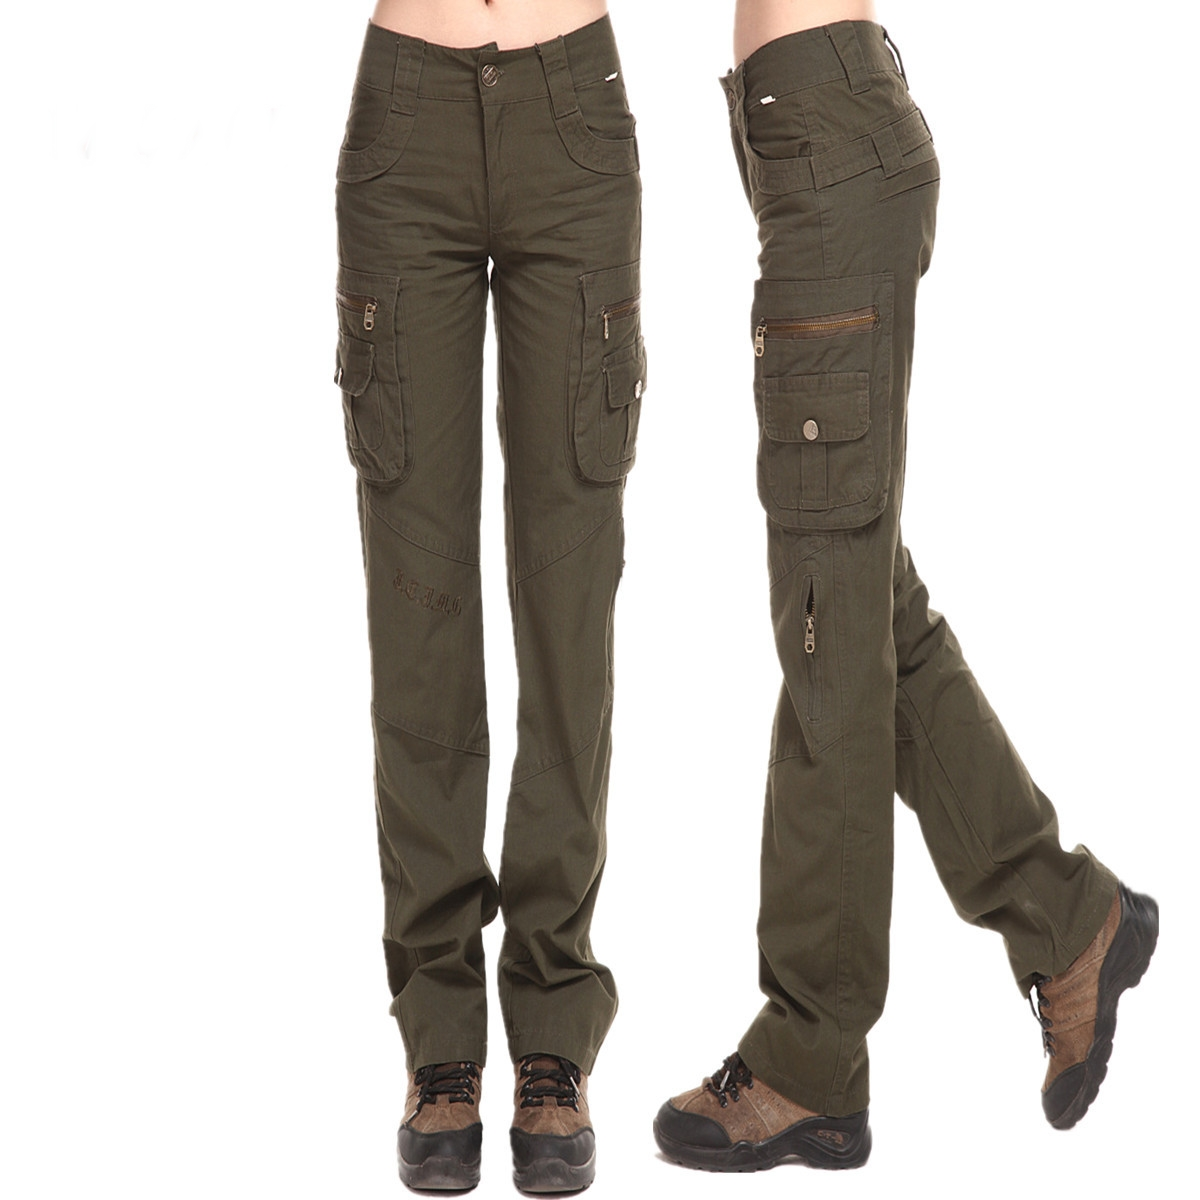 womens cargo pants at target photo - 2